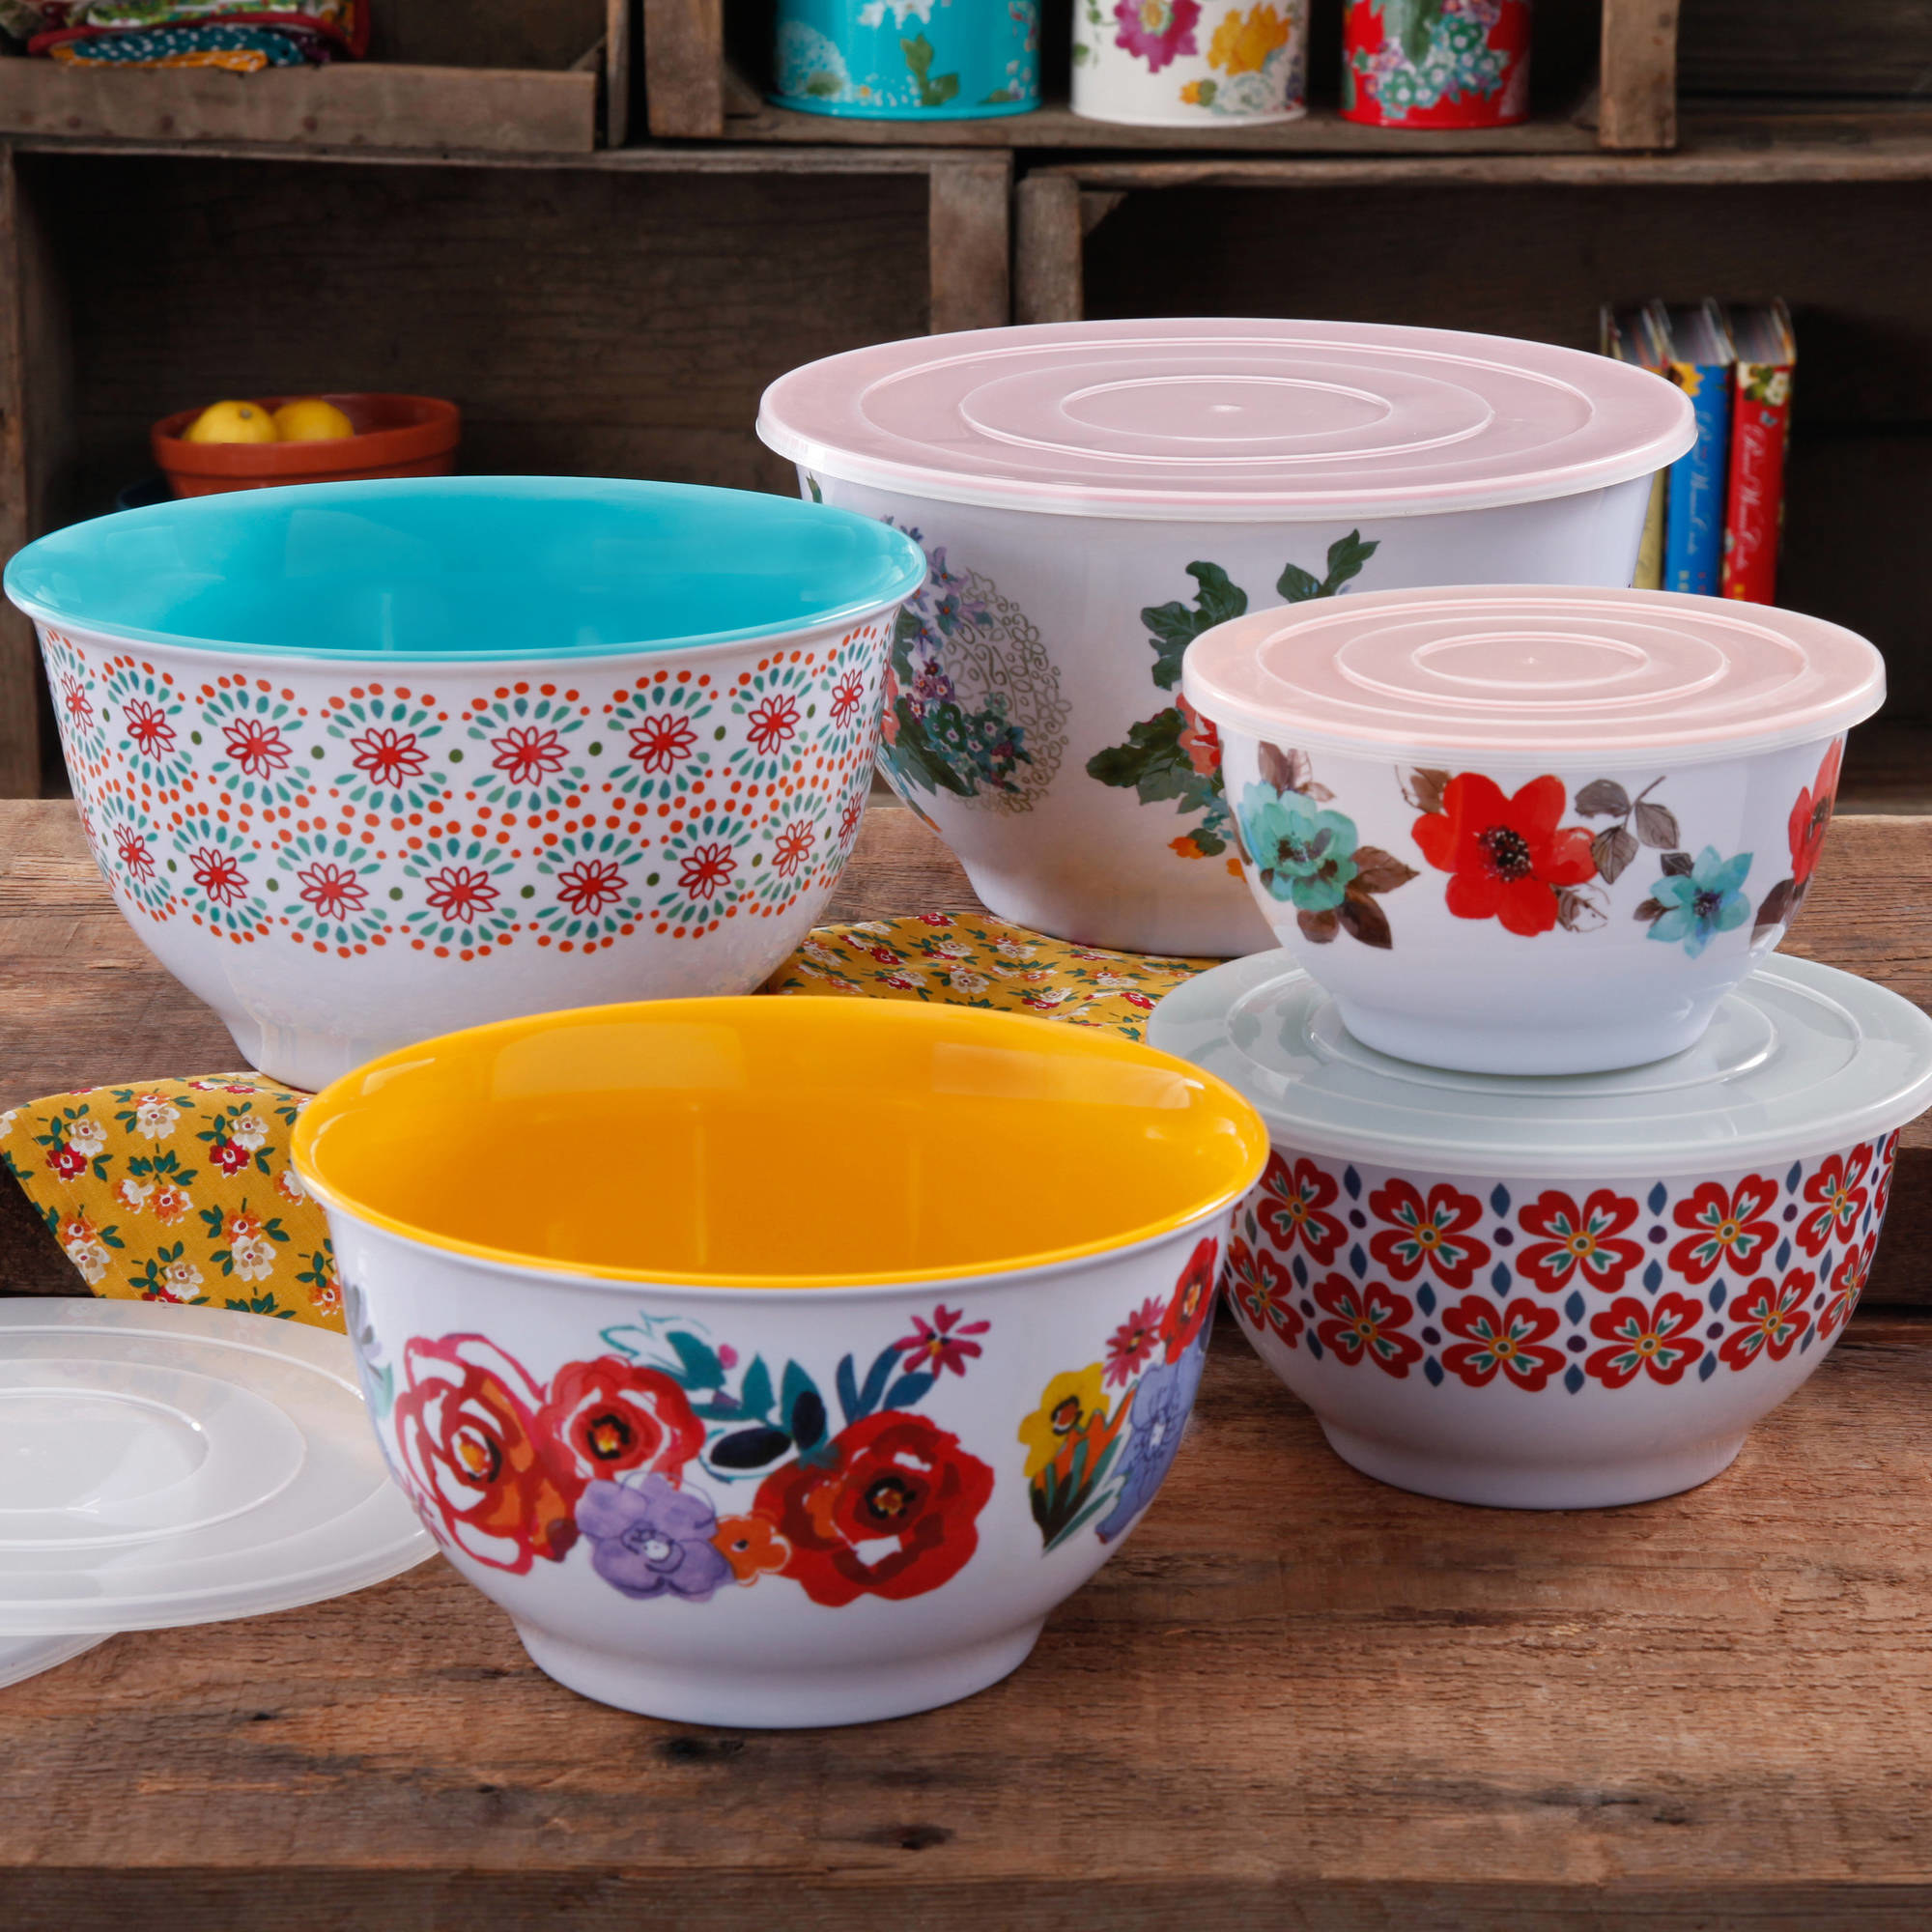 different size mixing bowls with floral patterns on them